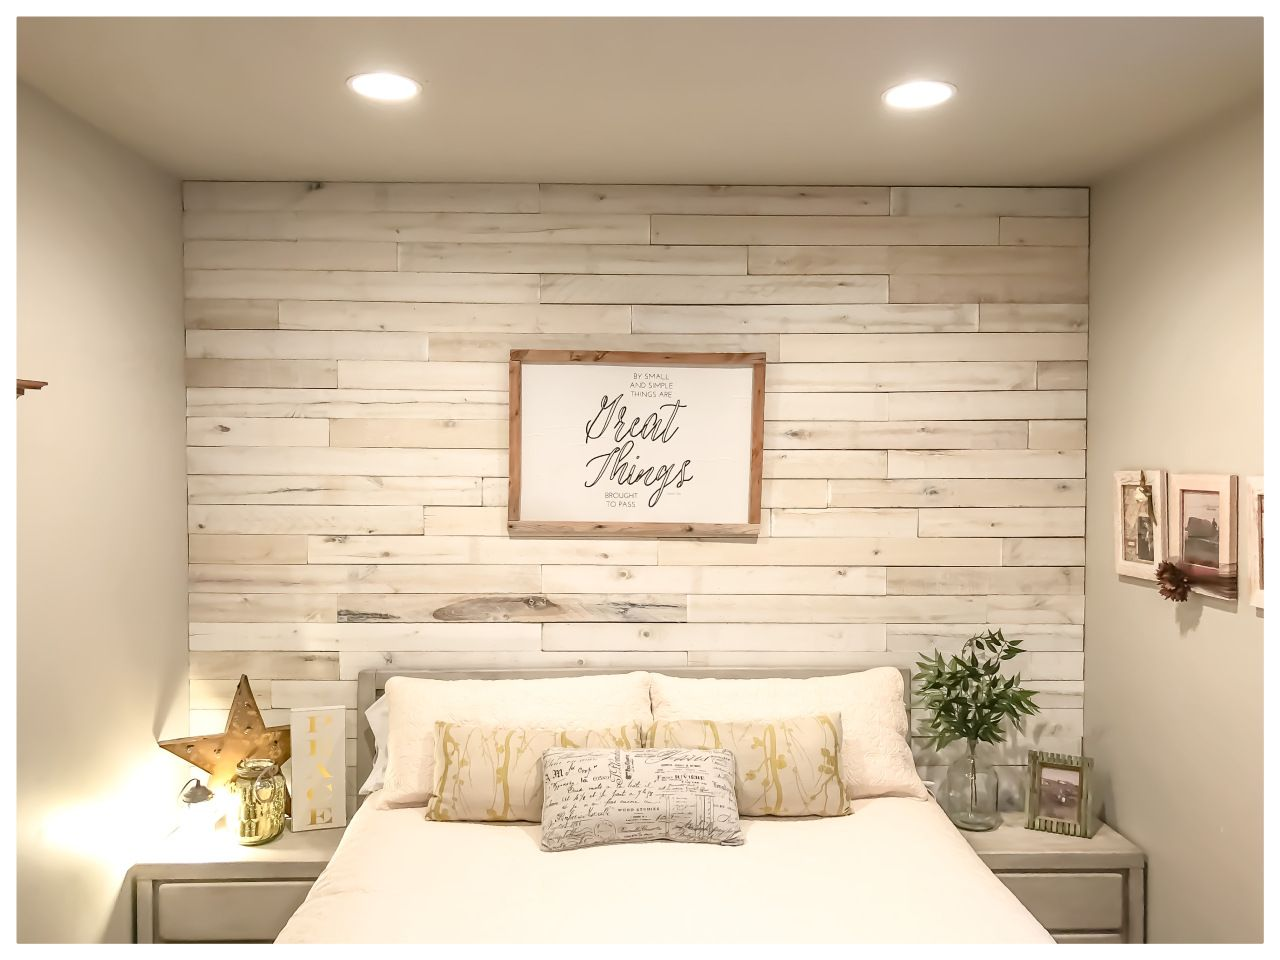 Farmhouse Style Wood Walls Diy Wood Wall With Weaber Lumber Feature Wall Bedroom Pallet Wall Bedroom Wood Walls Bedroom